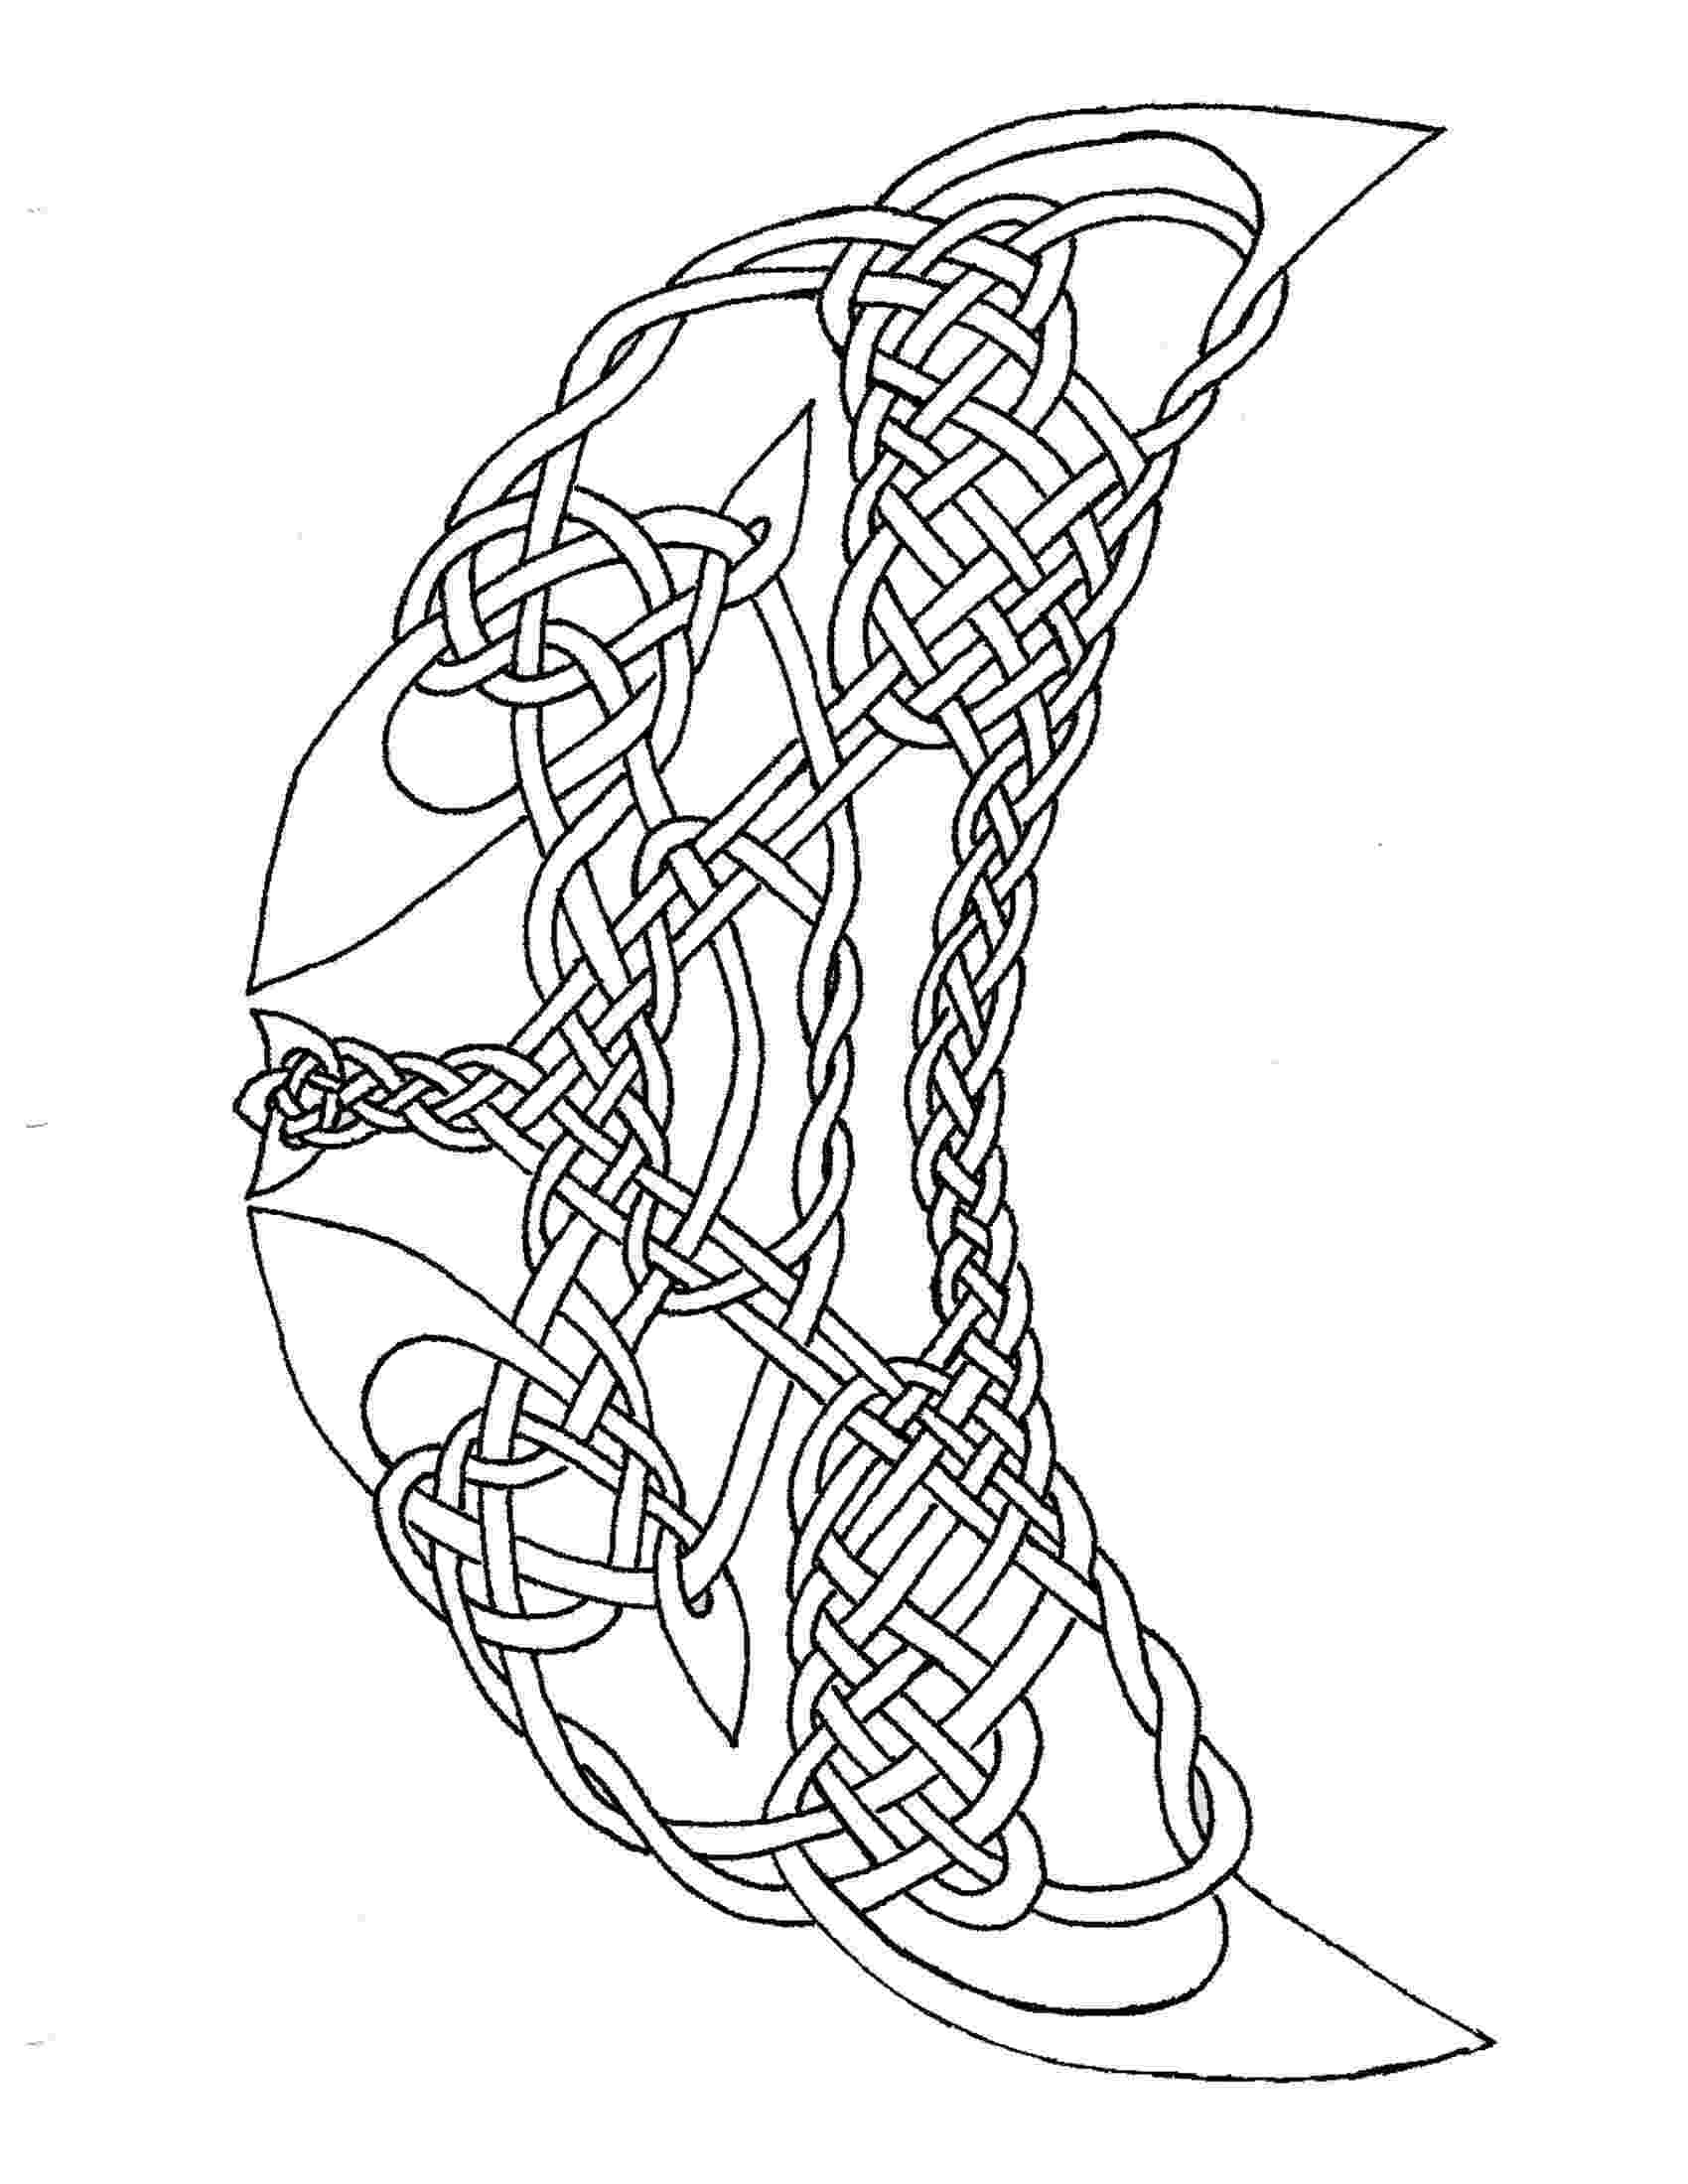 celtic coloring celtic knot coloring pages to download and print for free celtic coloring